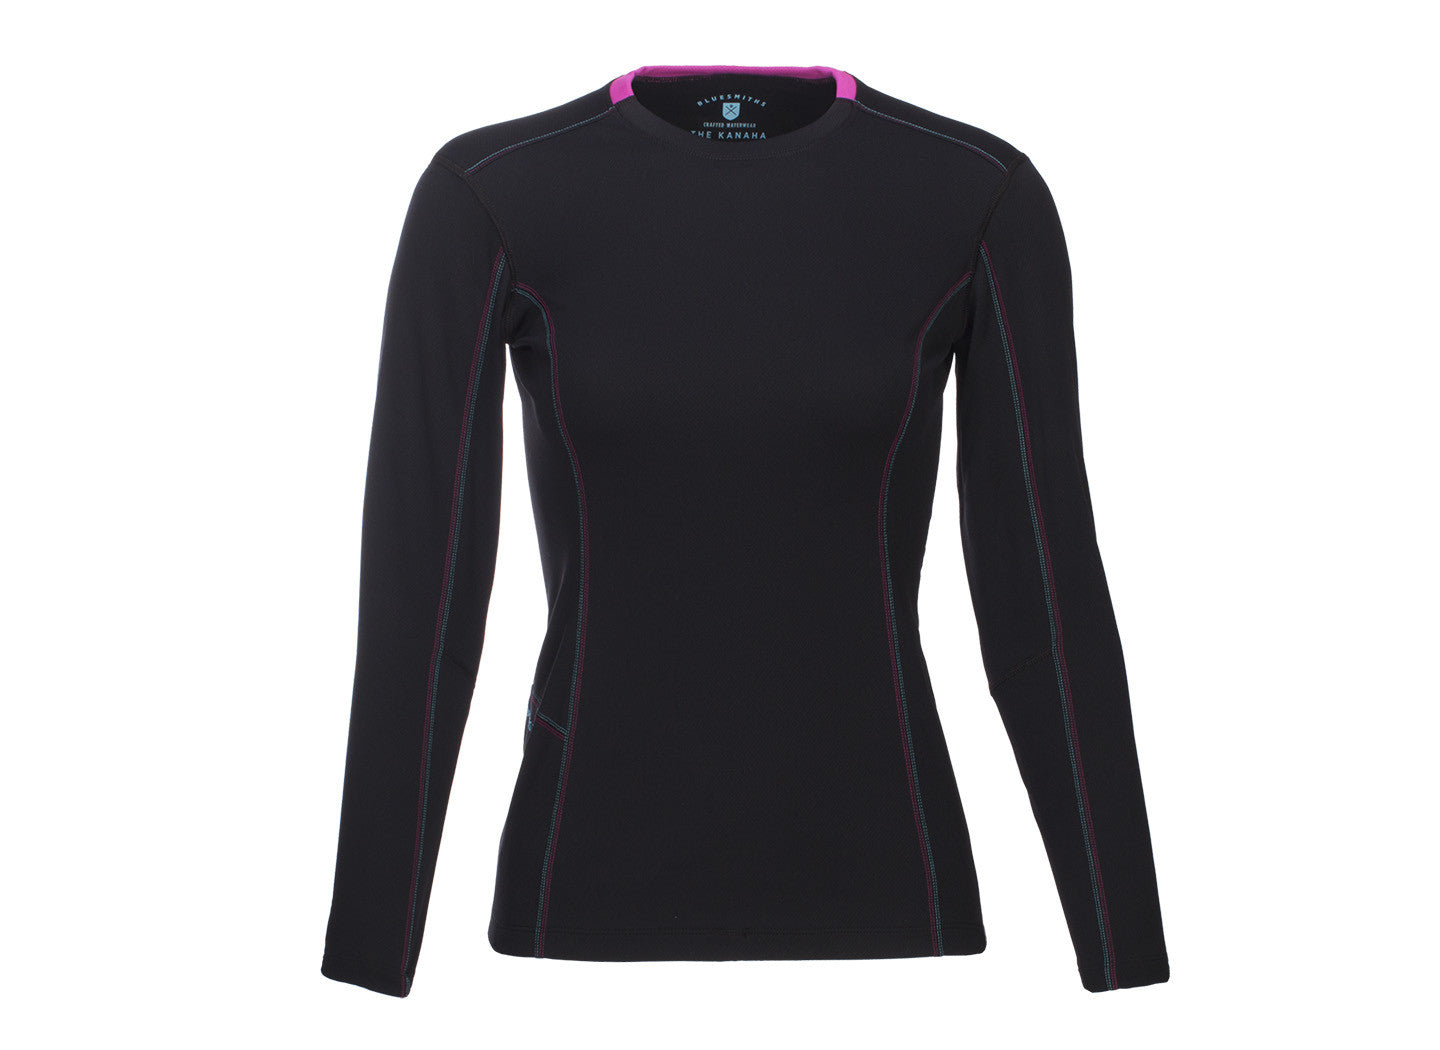 The Kanaha Hydrophobic Shirt for Women in Black (Hibiscus Pink) - The World's Finest Waterwear | BLUESMITHS